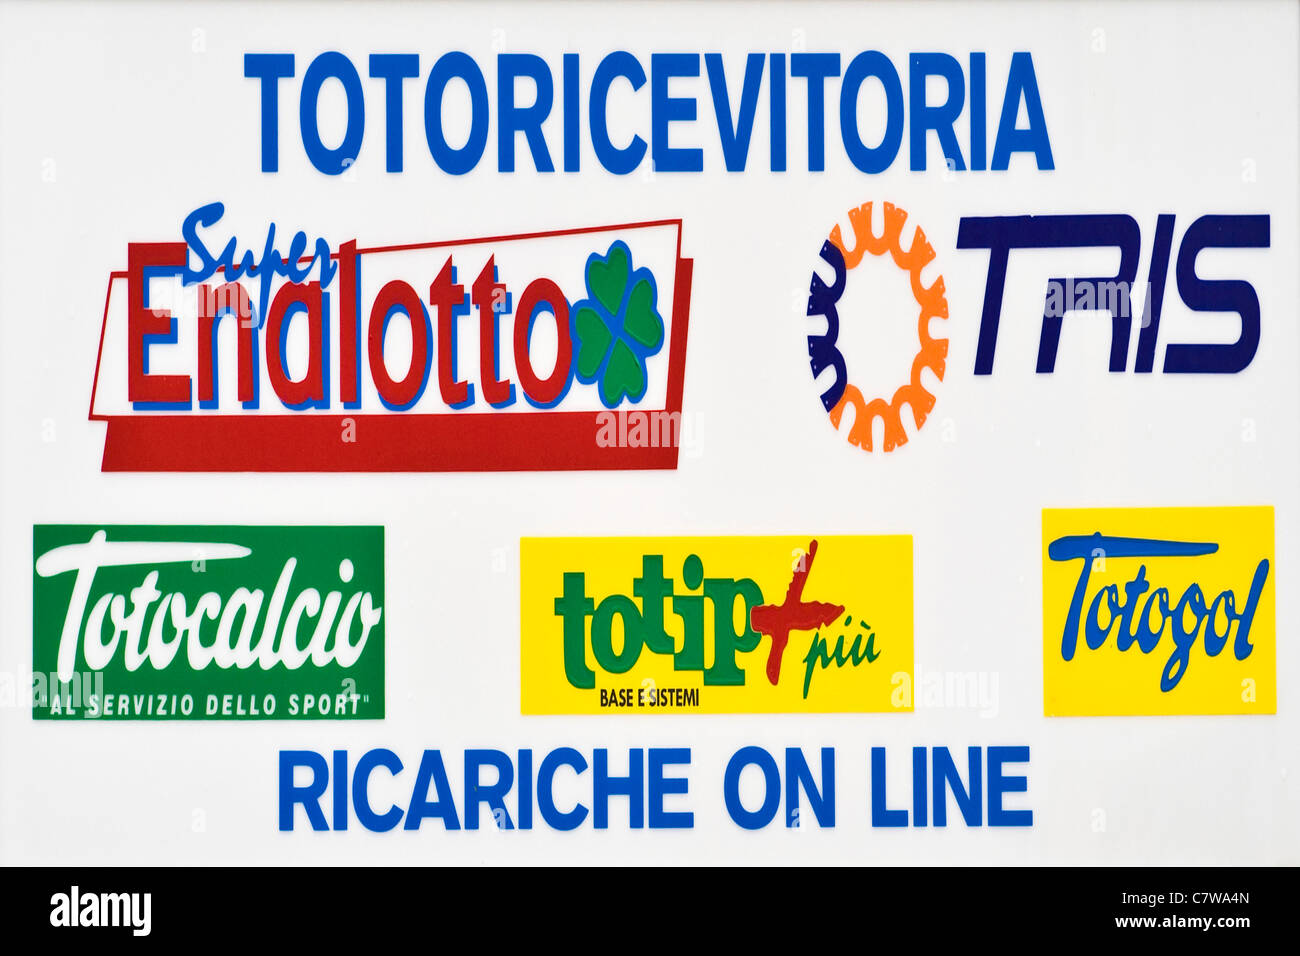 Totocalcio an lotto lottery sign - Stock Image